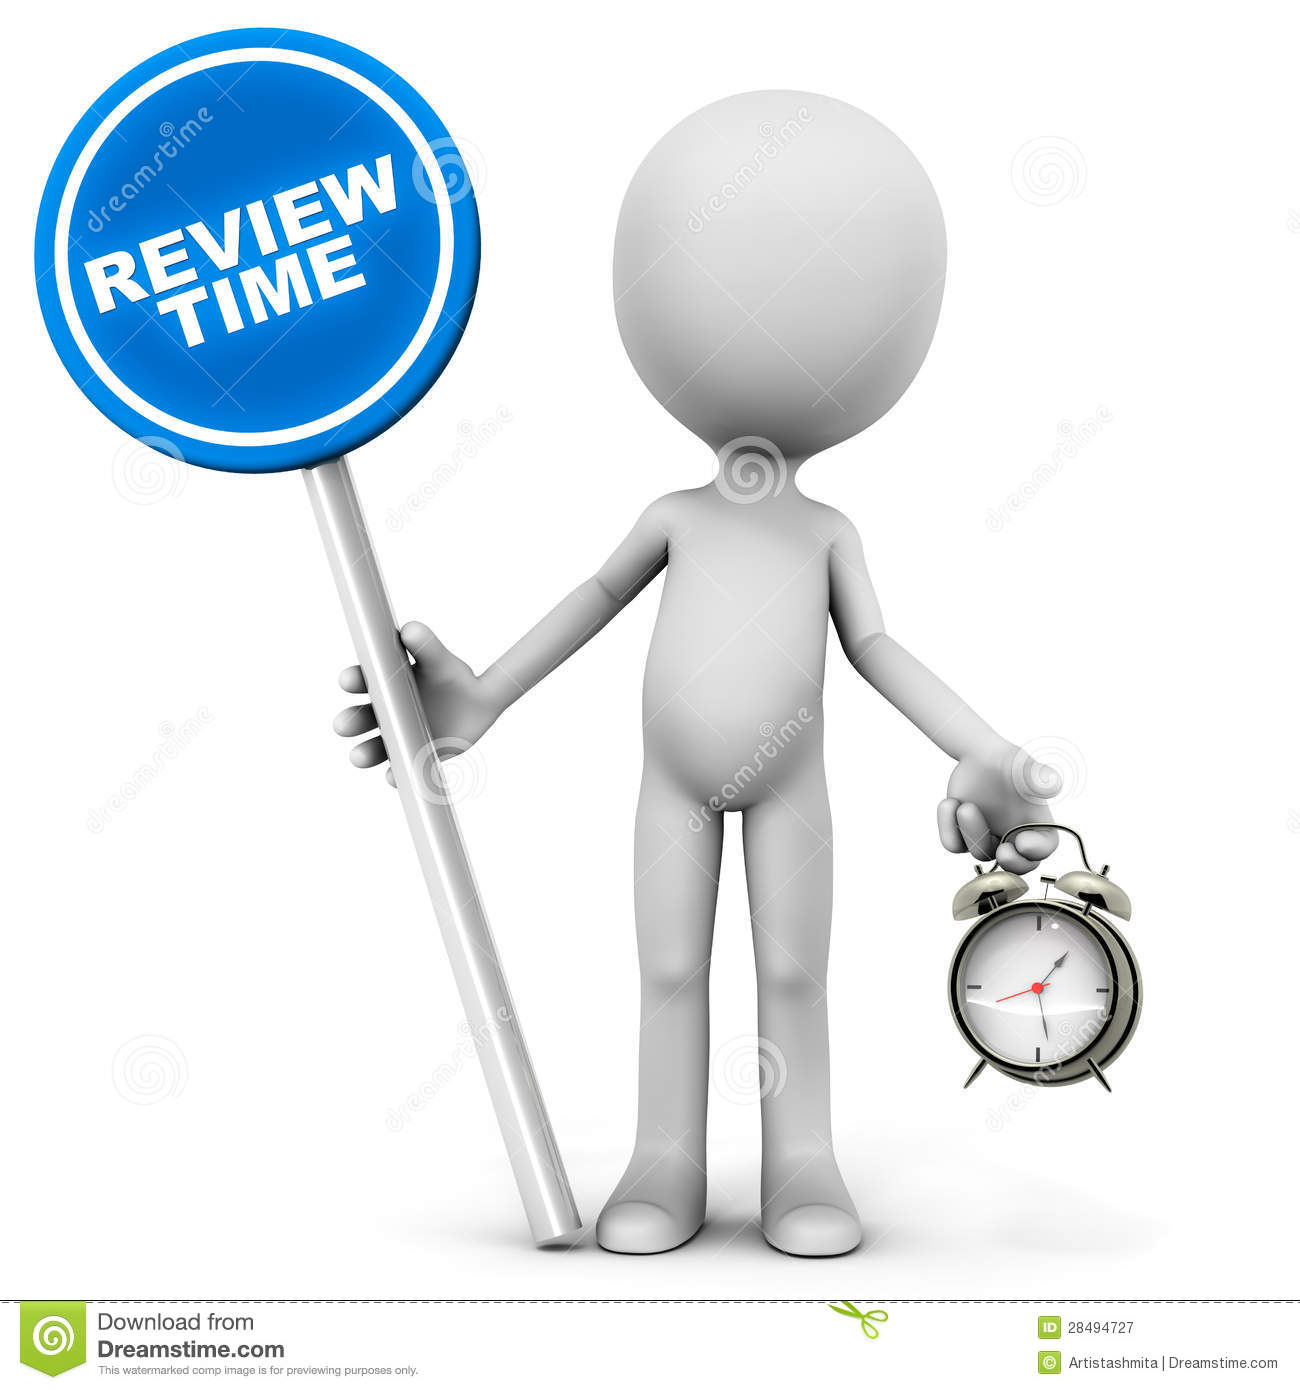 Web Design ontime review